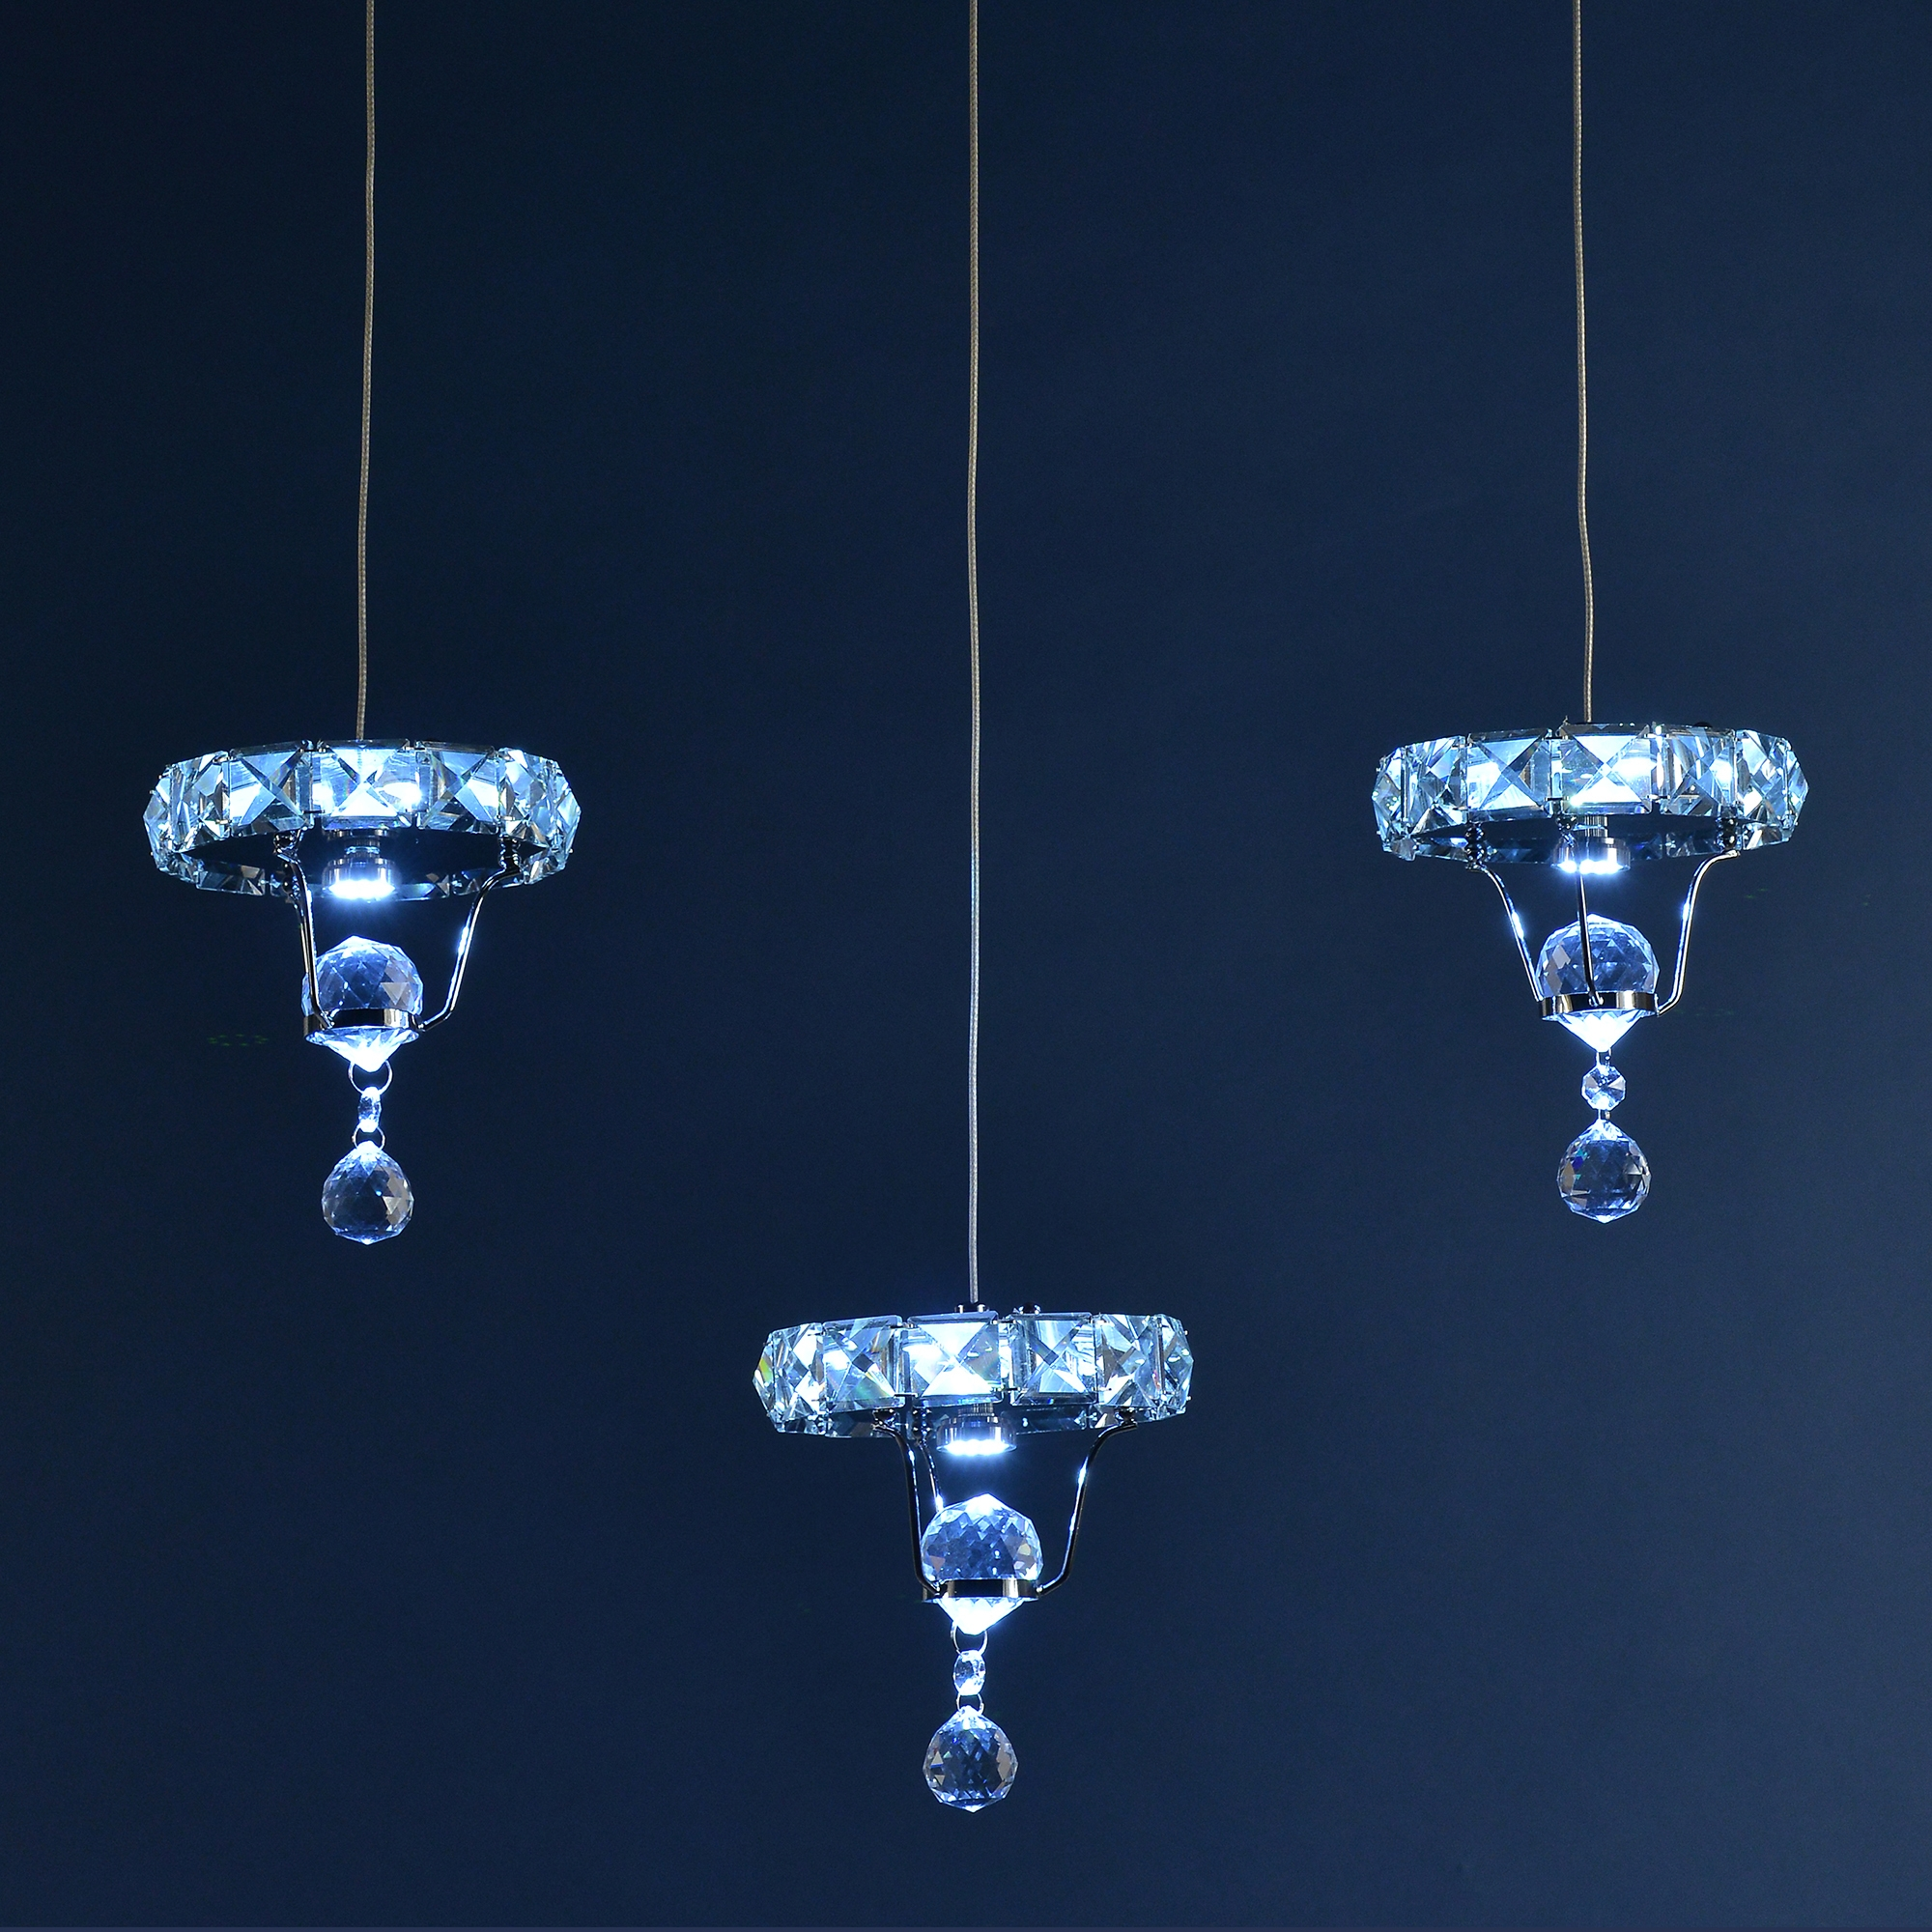 Crystal 3 Light Chandelier - Chrome and Blue